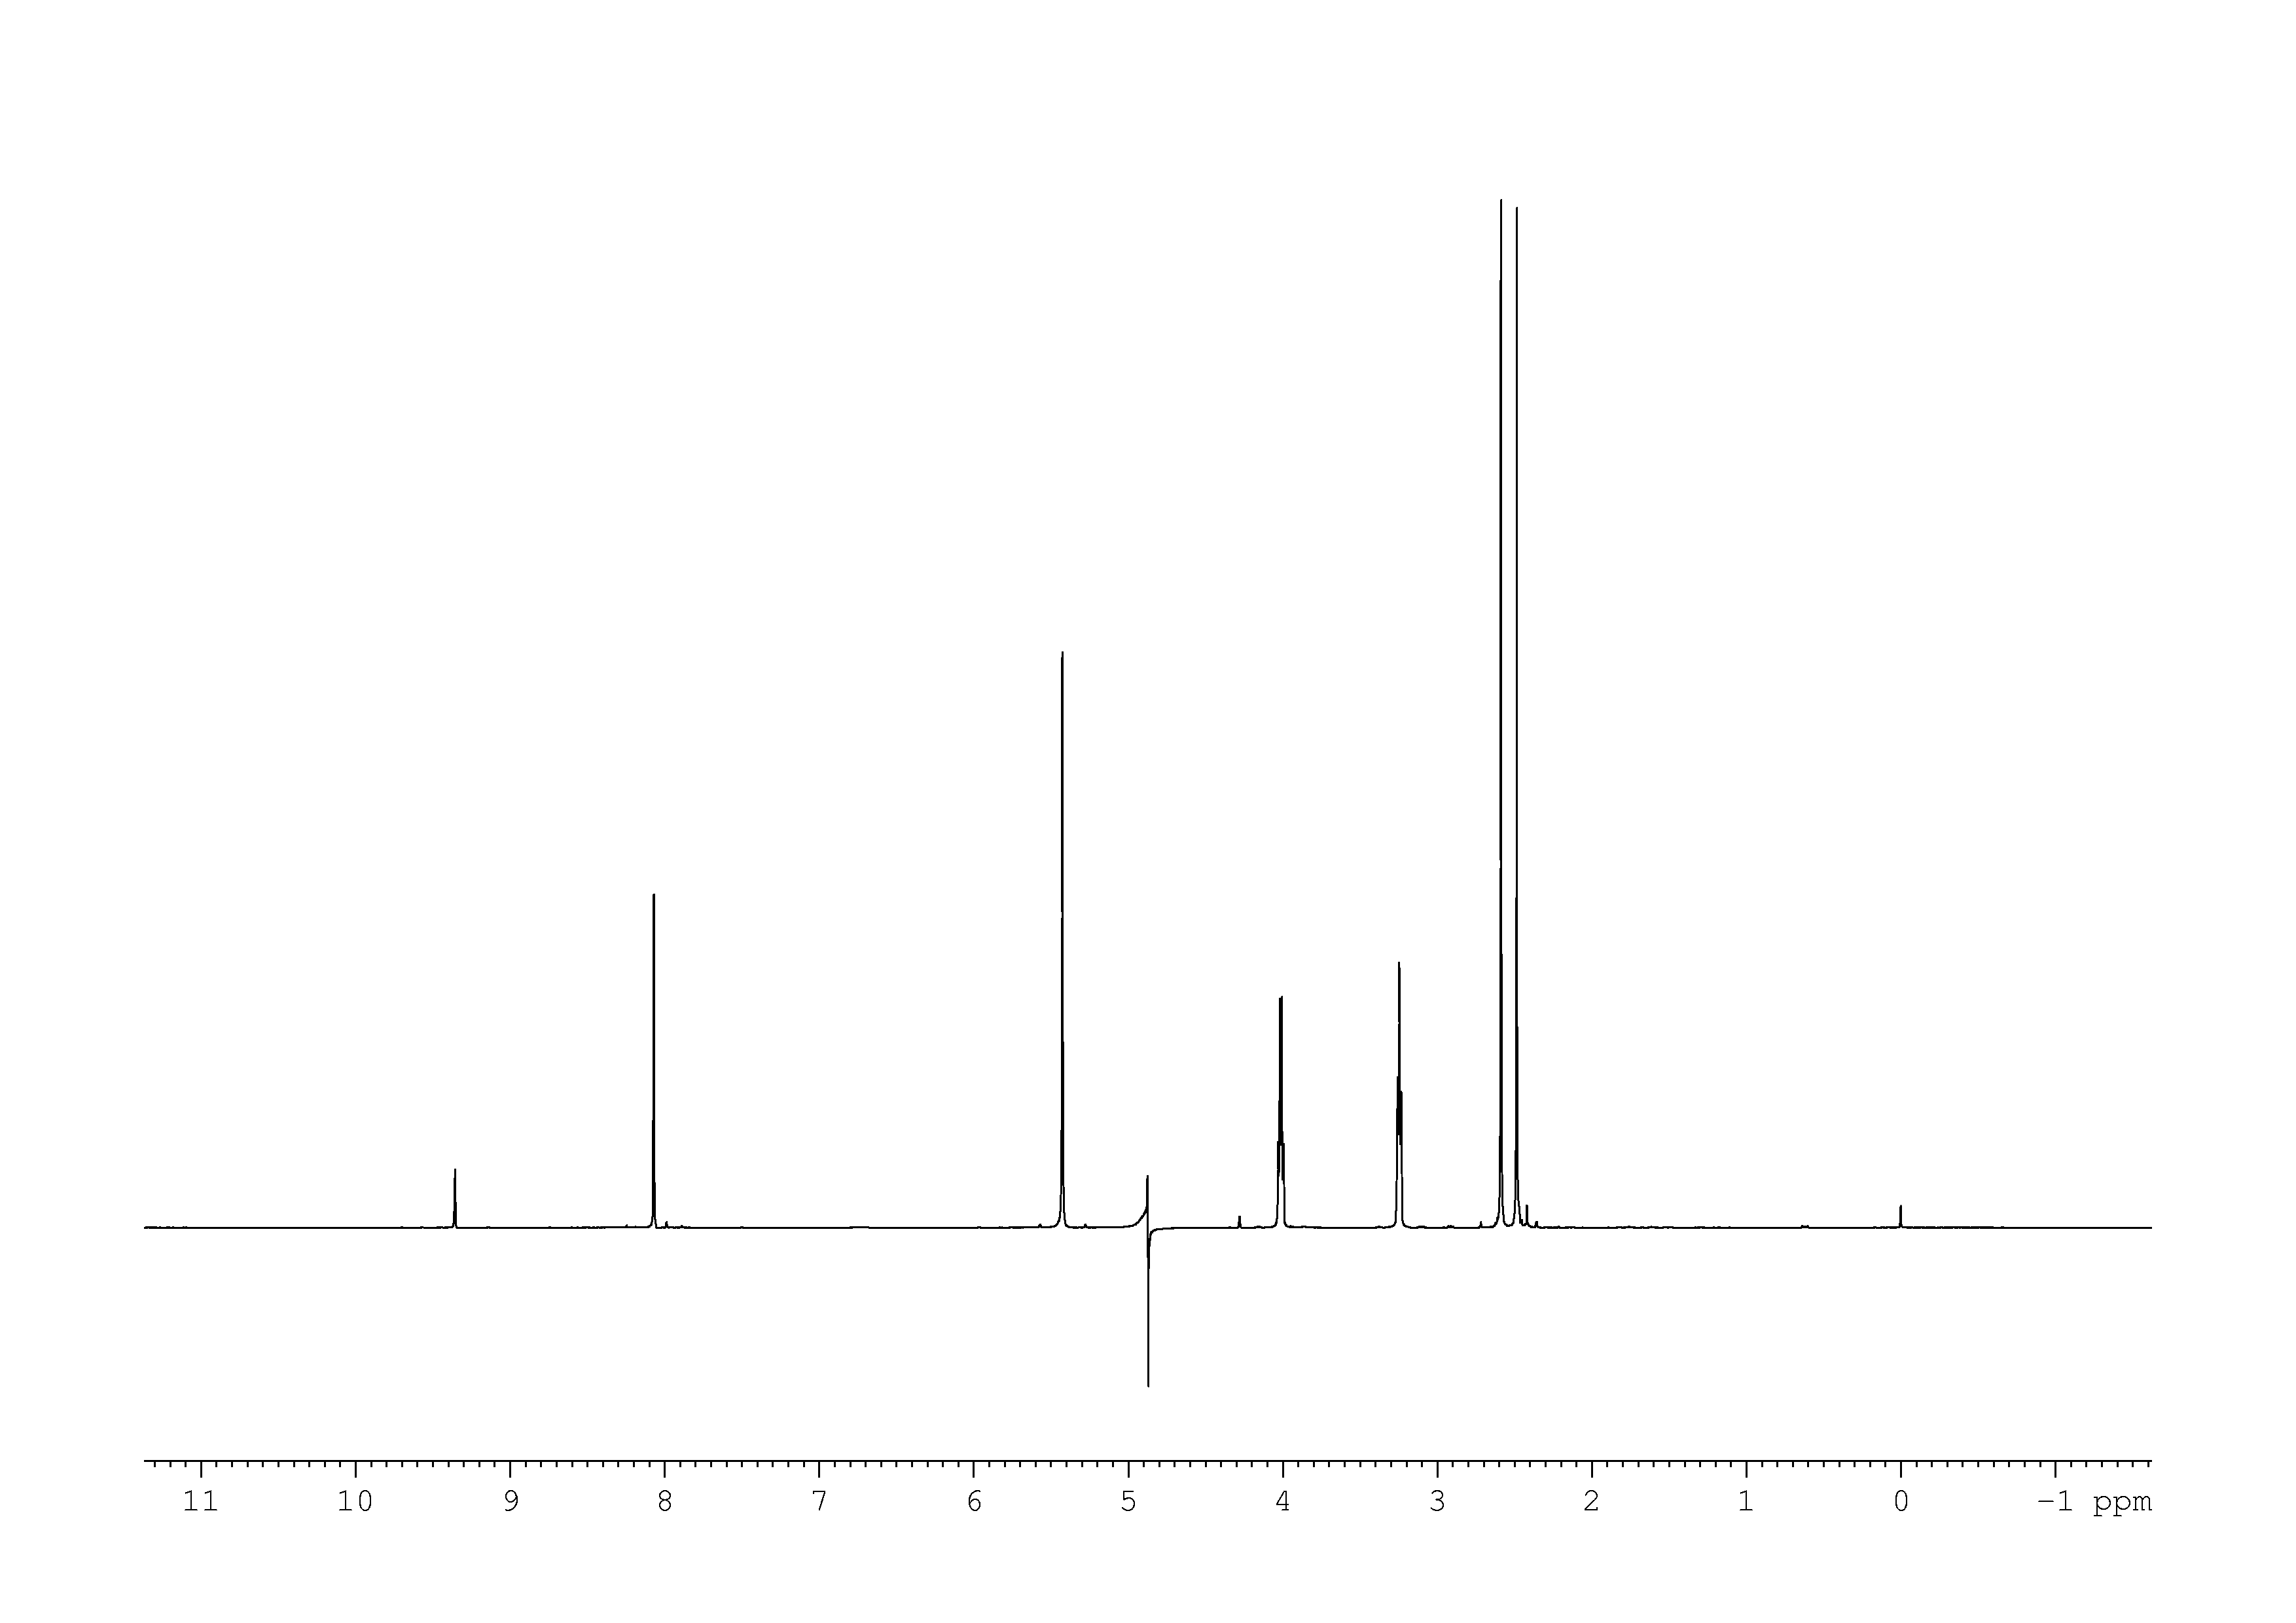 1D 1H, 7.4 spectrum for thiamine monophosphate